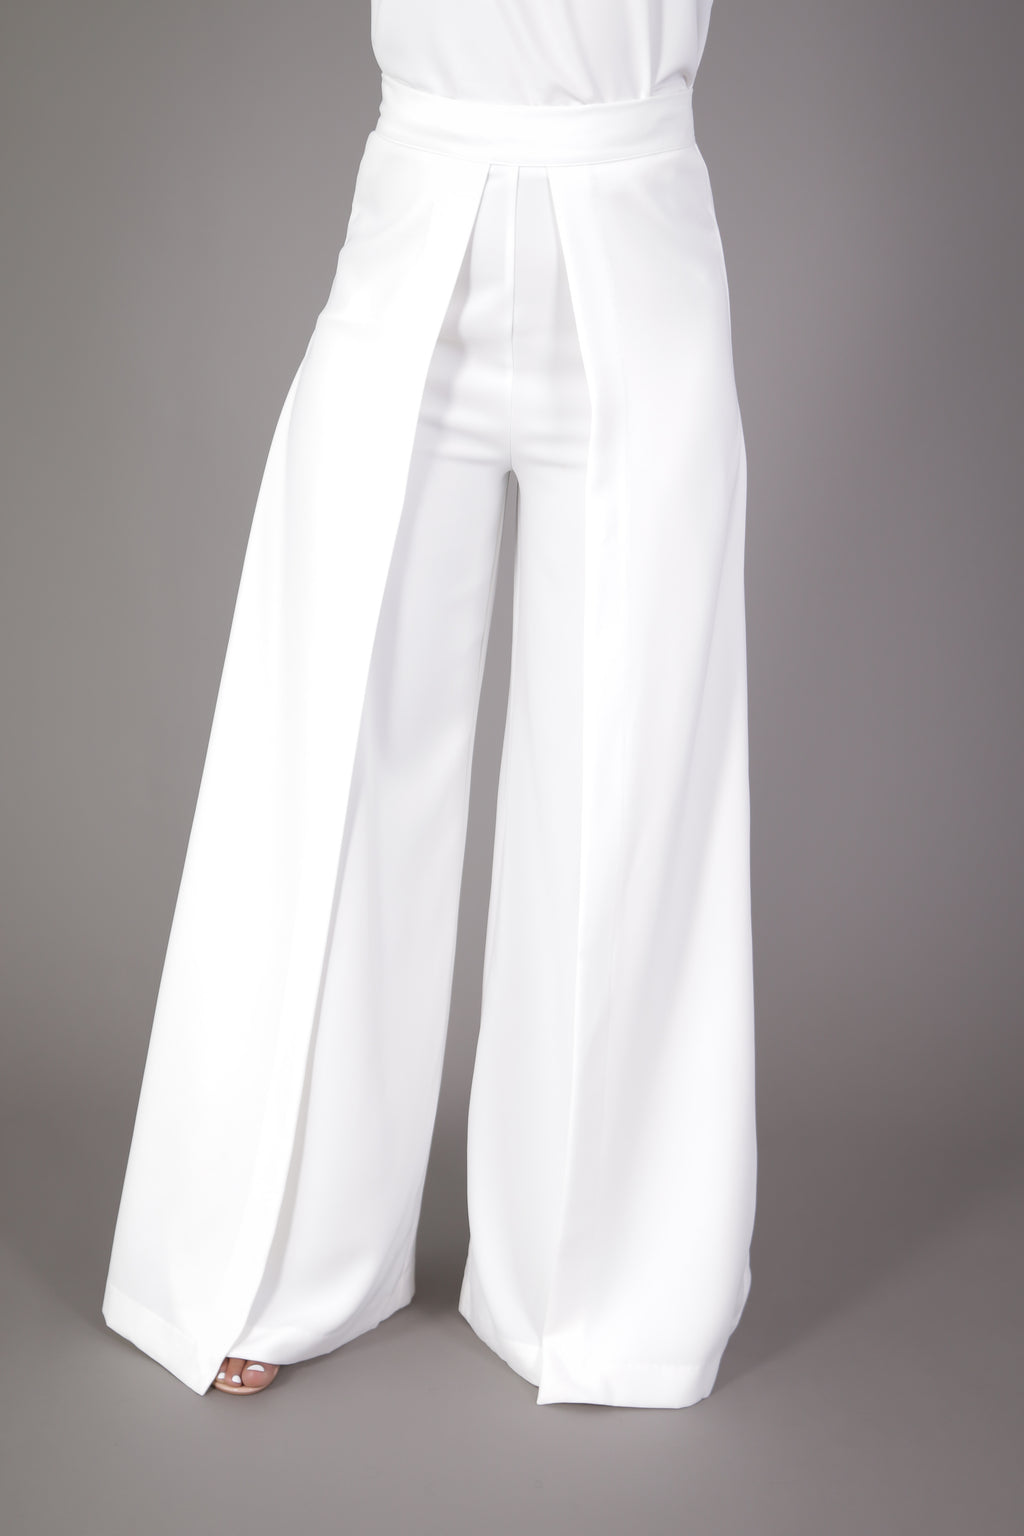 High Waisted Wide Leg Pleated Palazzo Pant (White)